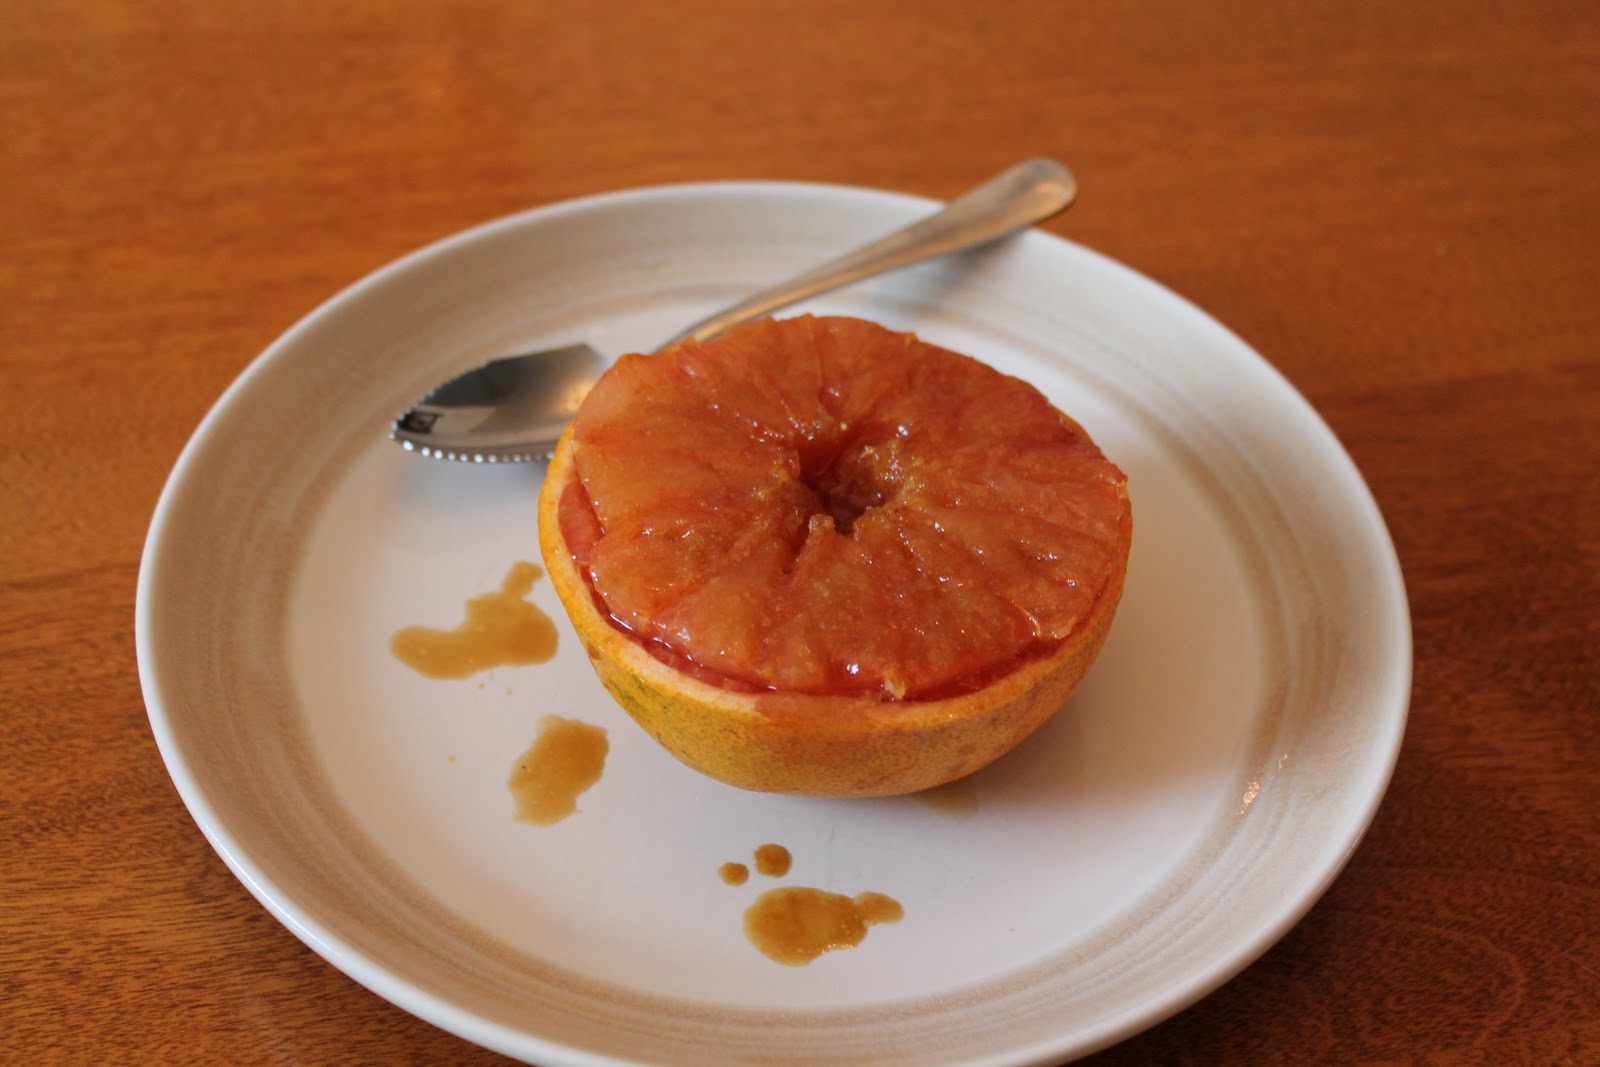 Savory Moments: Brown sugar and ginger broiled grapefruit